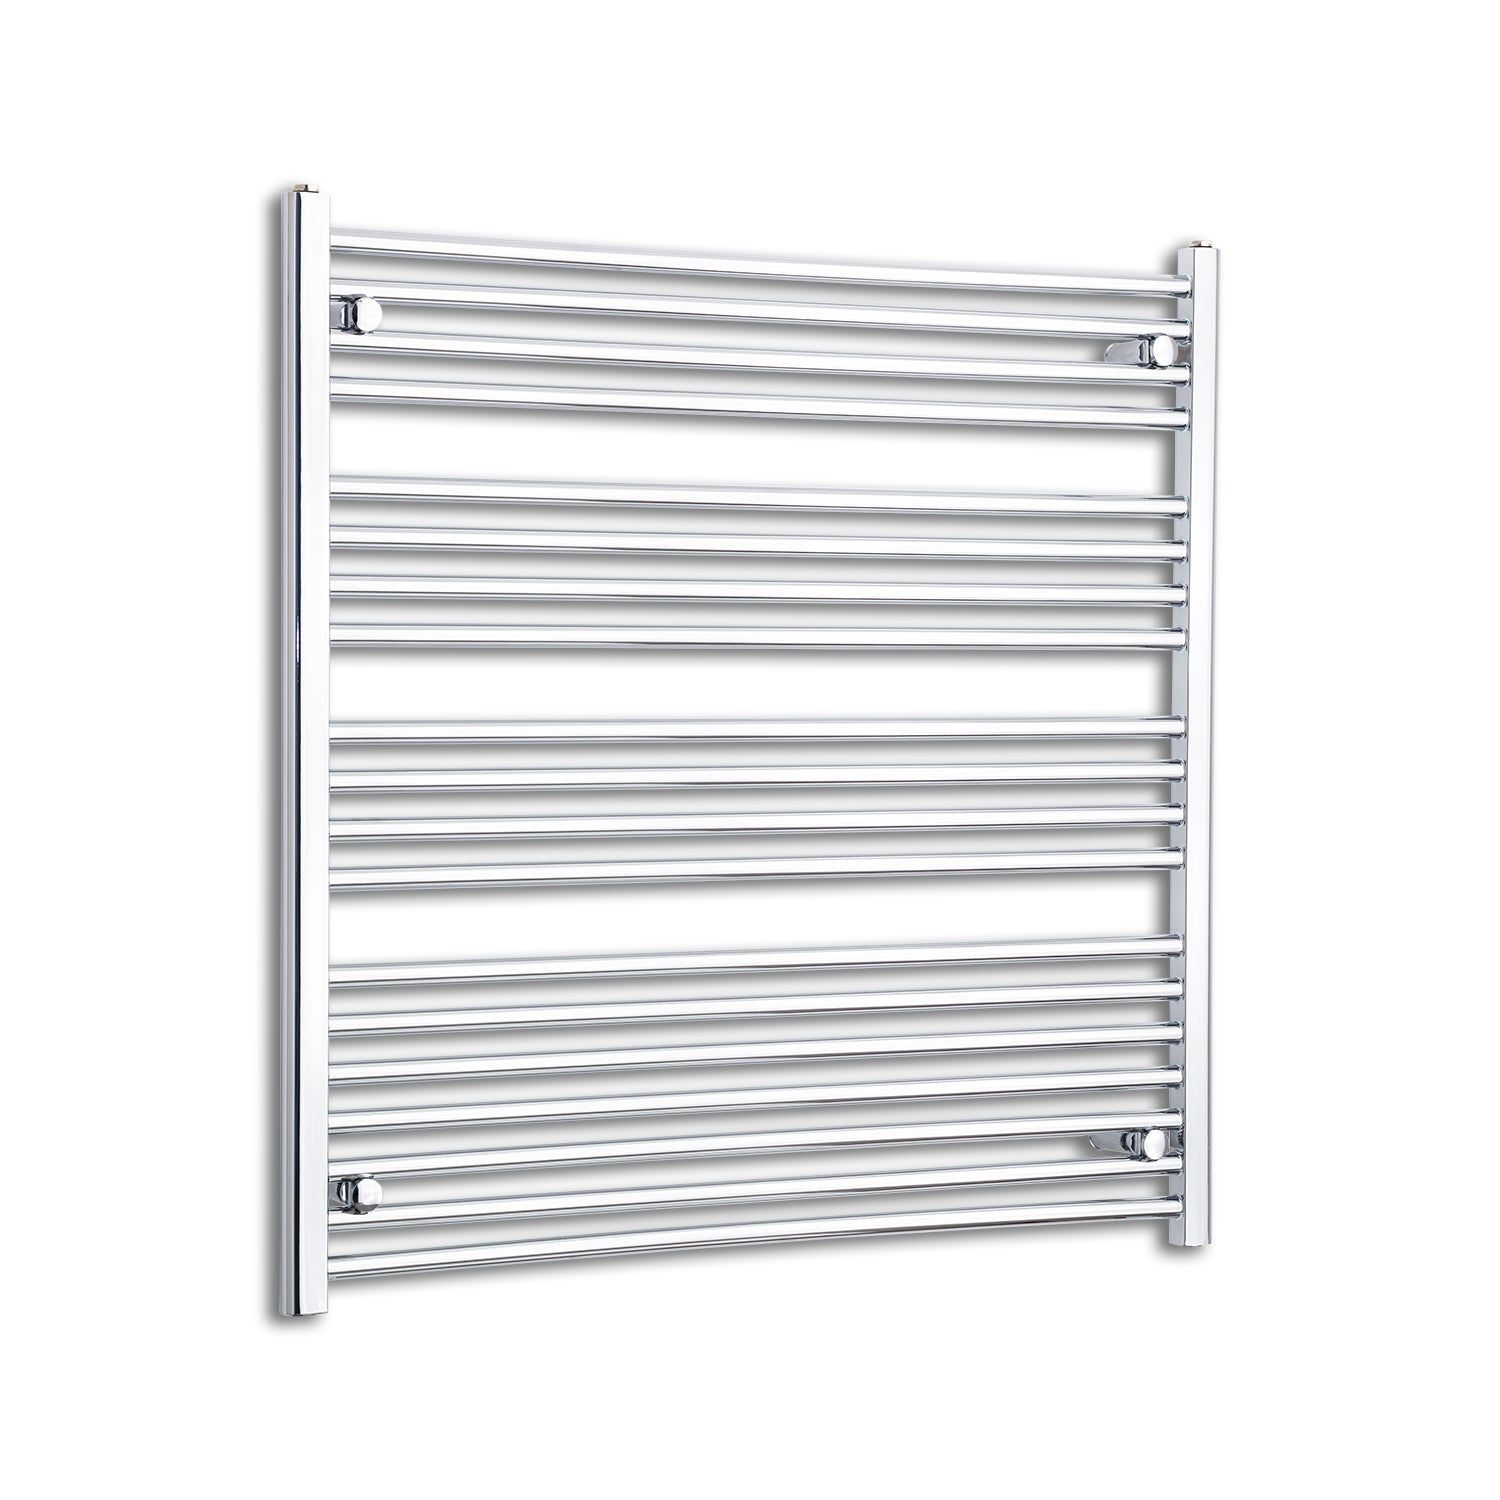 1100mm Wide 1000mm High Flat Chrome Heated Towel Rail Radiator HTR,Towel Rail Only